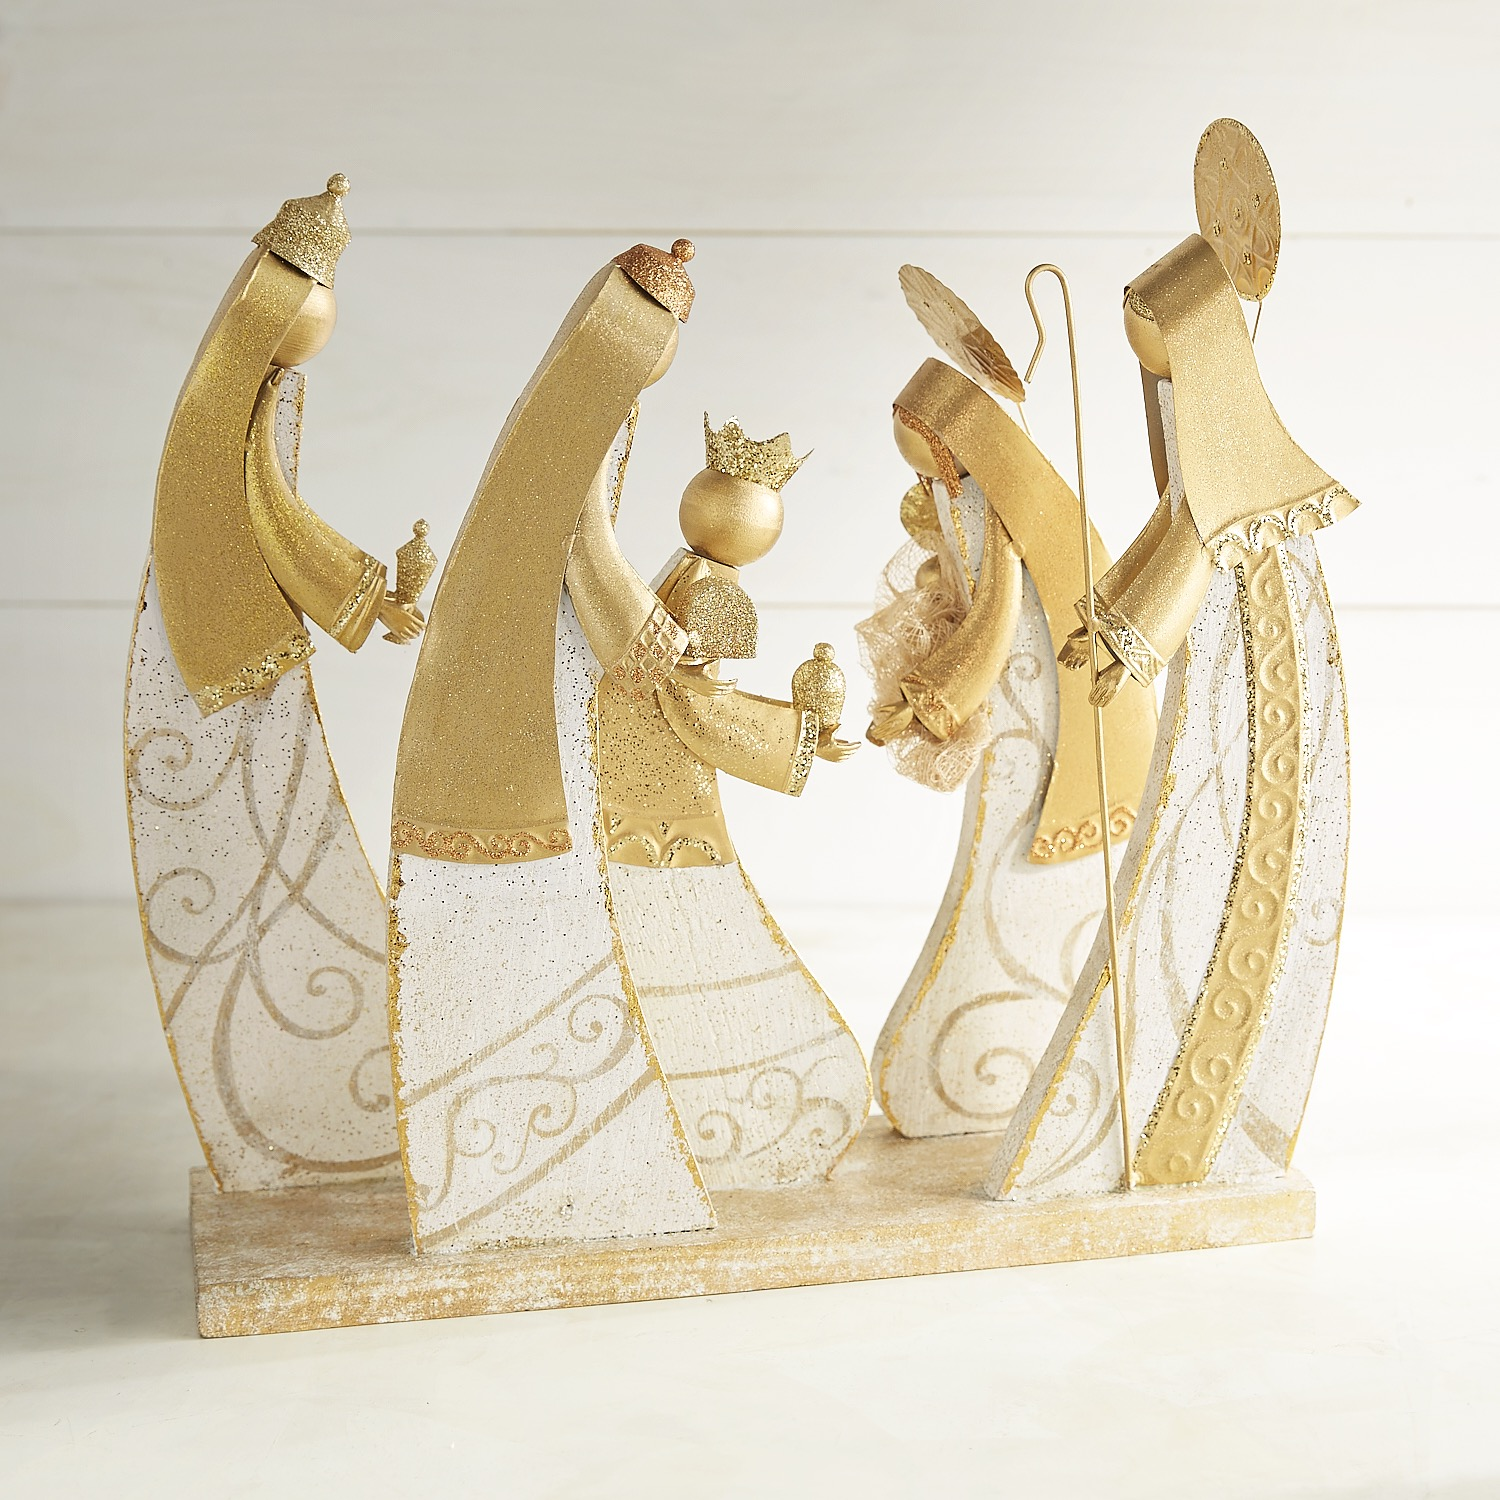 Wood & Metal Nativity